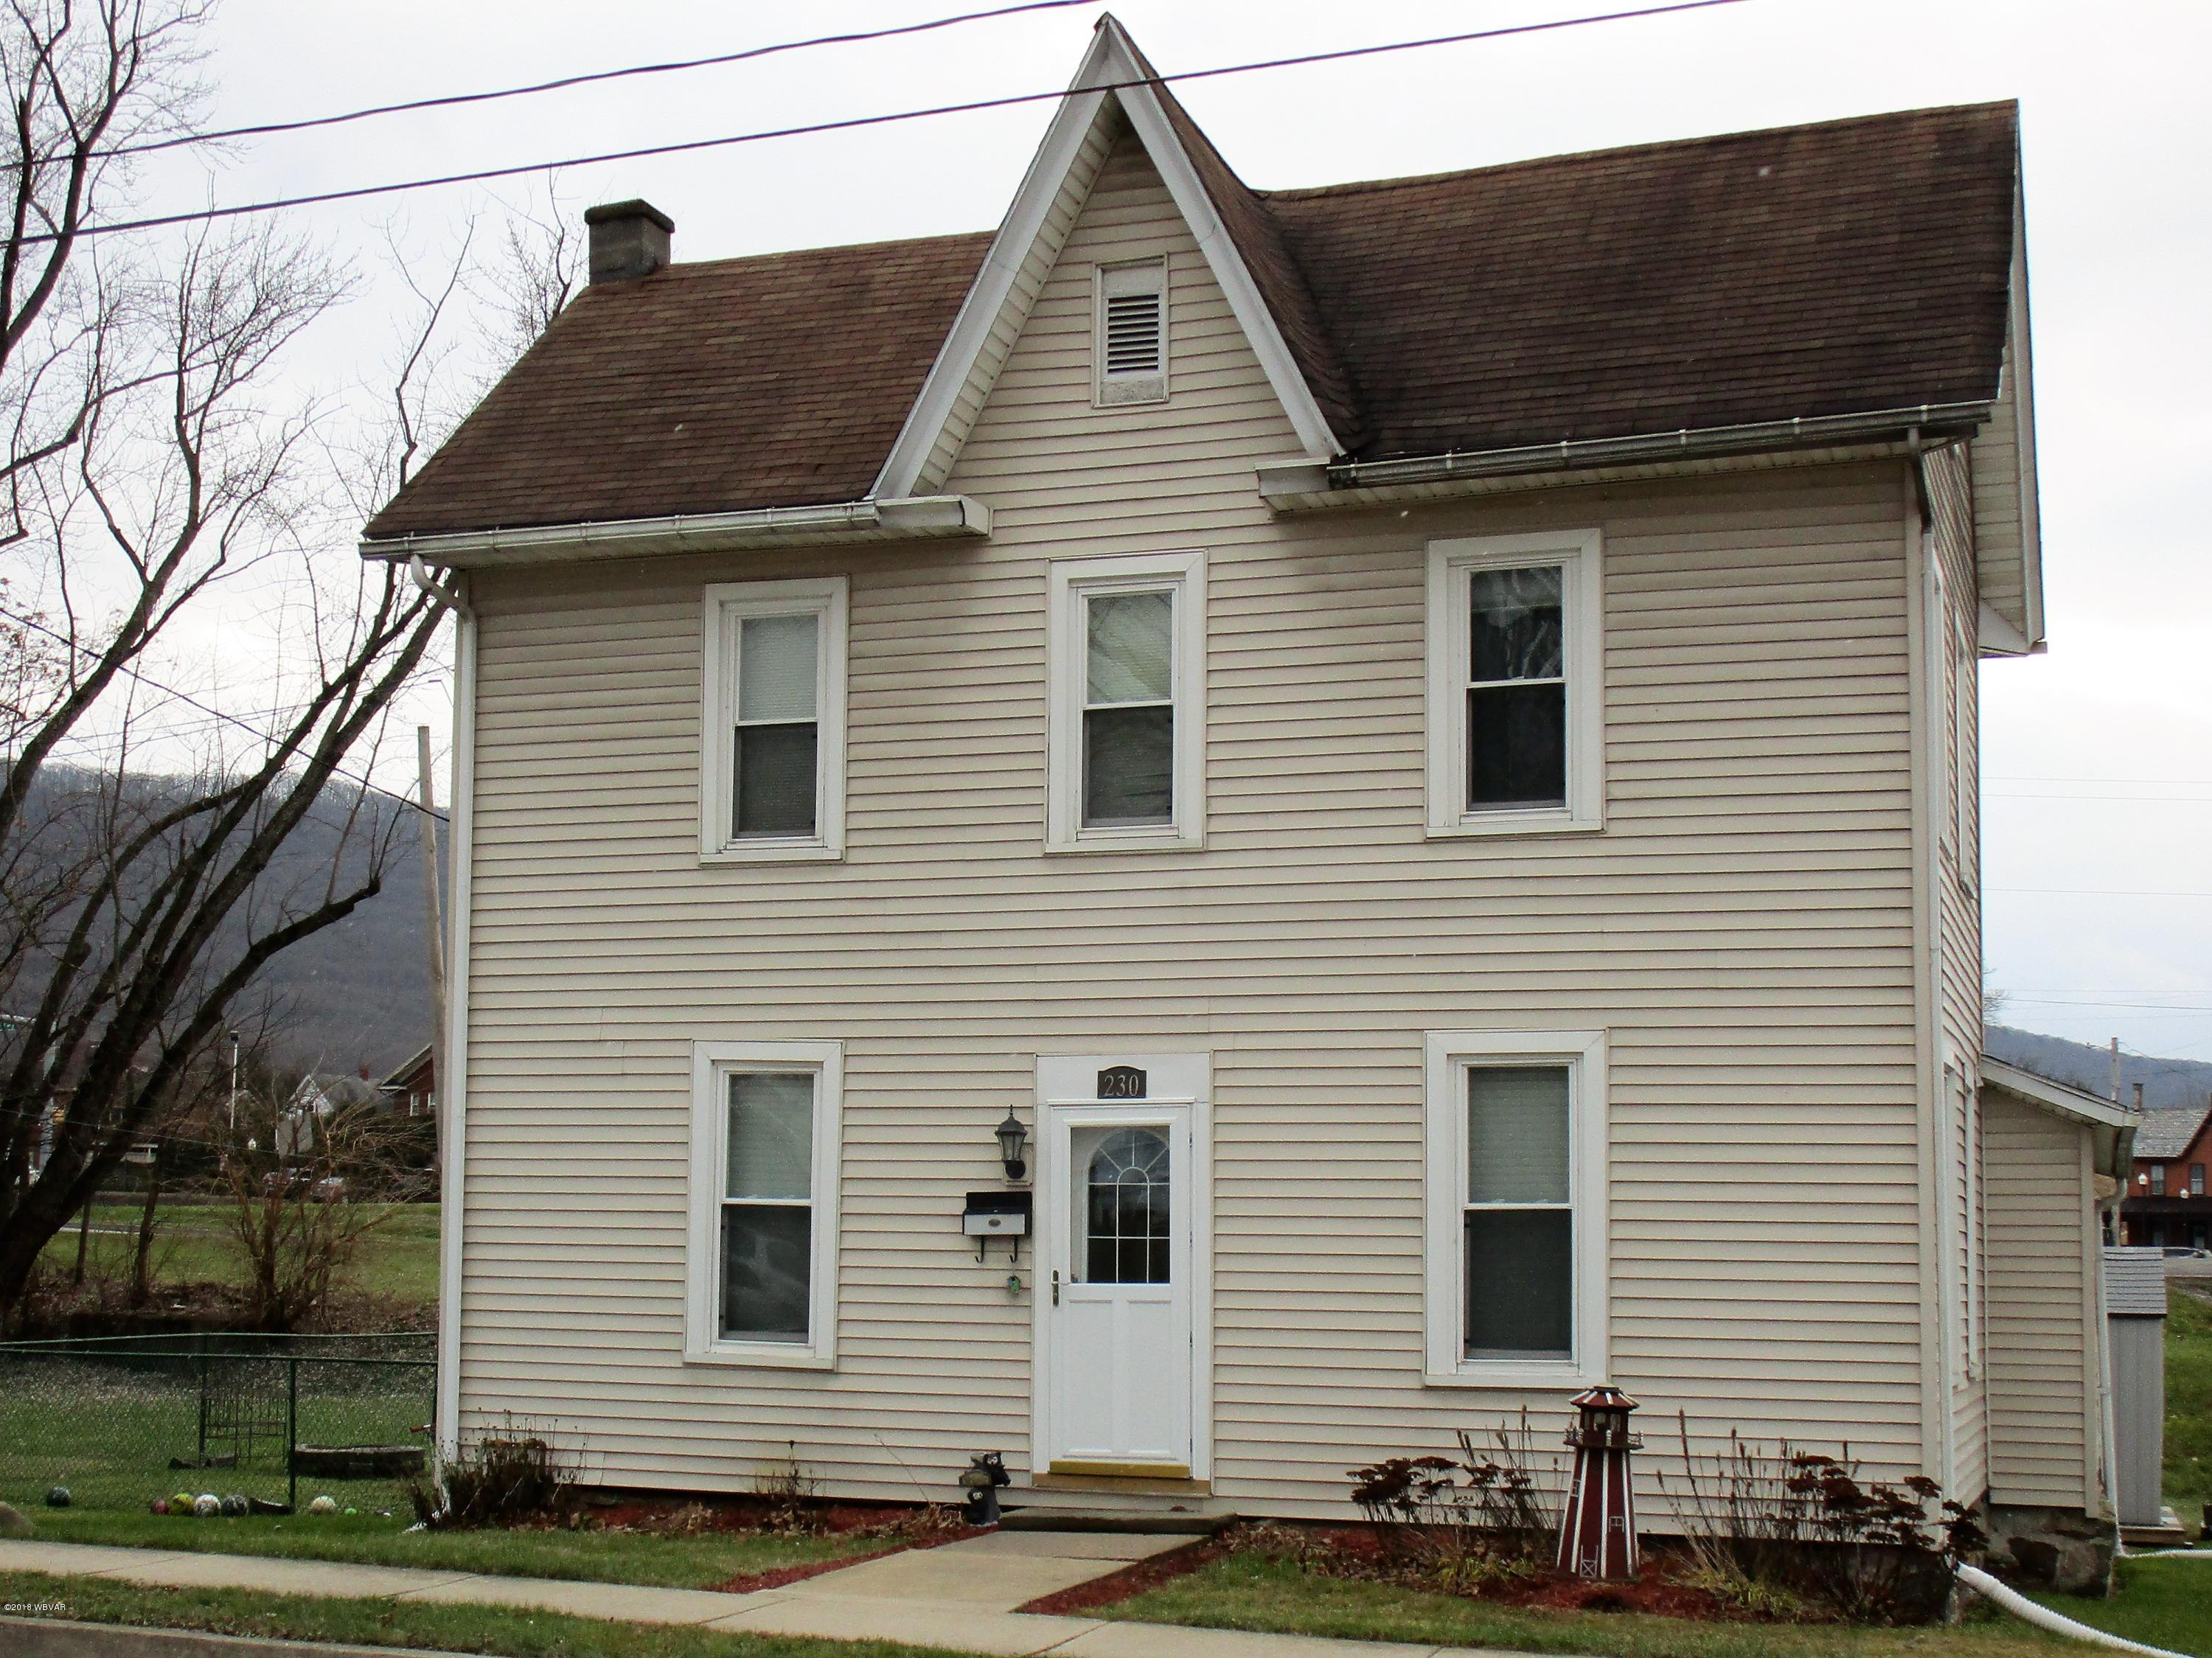 230 MAIN STREET,S. Williamsport,PA 17702,3 Bedrooms Bedrooms,1.75 BathroomsBathrooms,Residential,MAIN,WB-86103